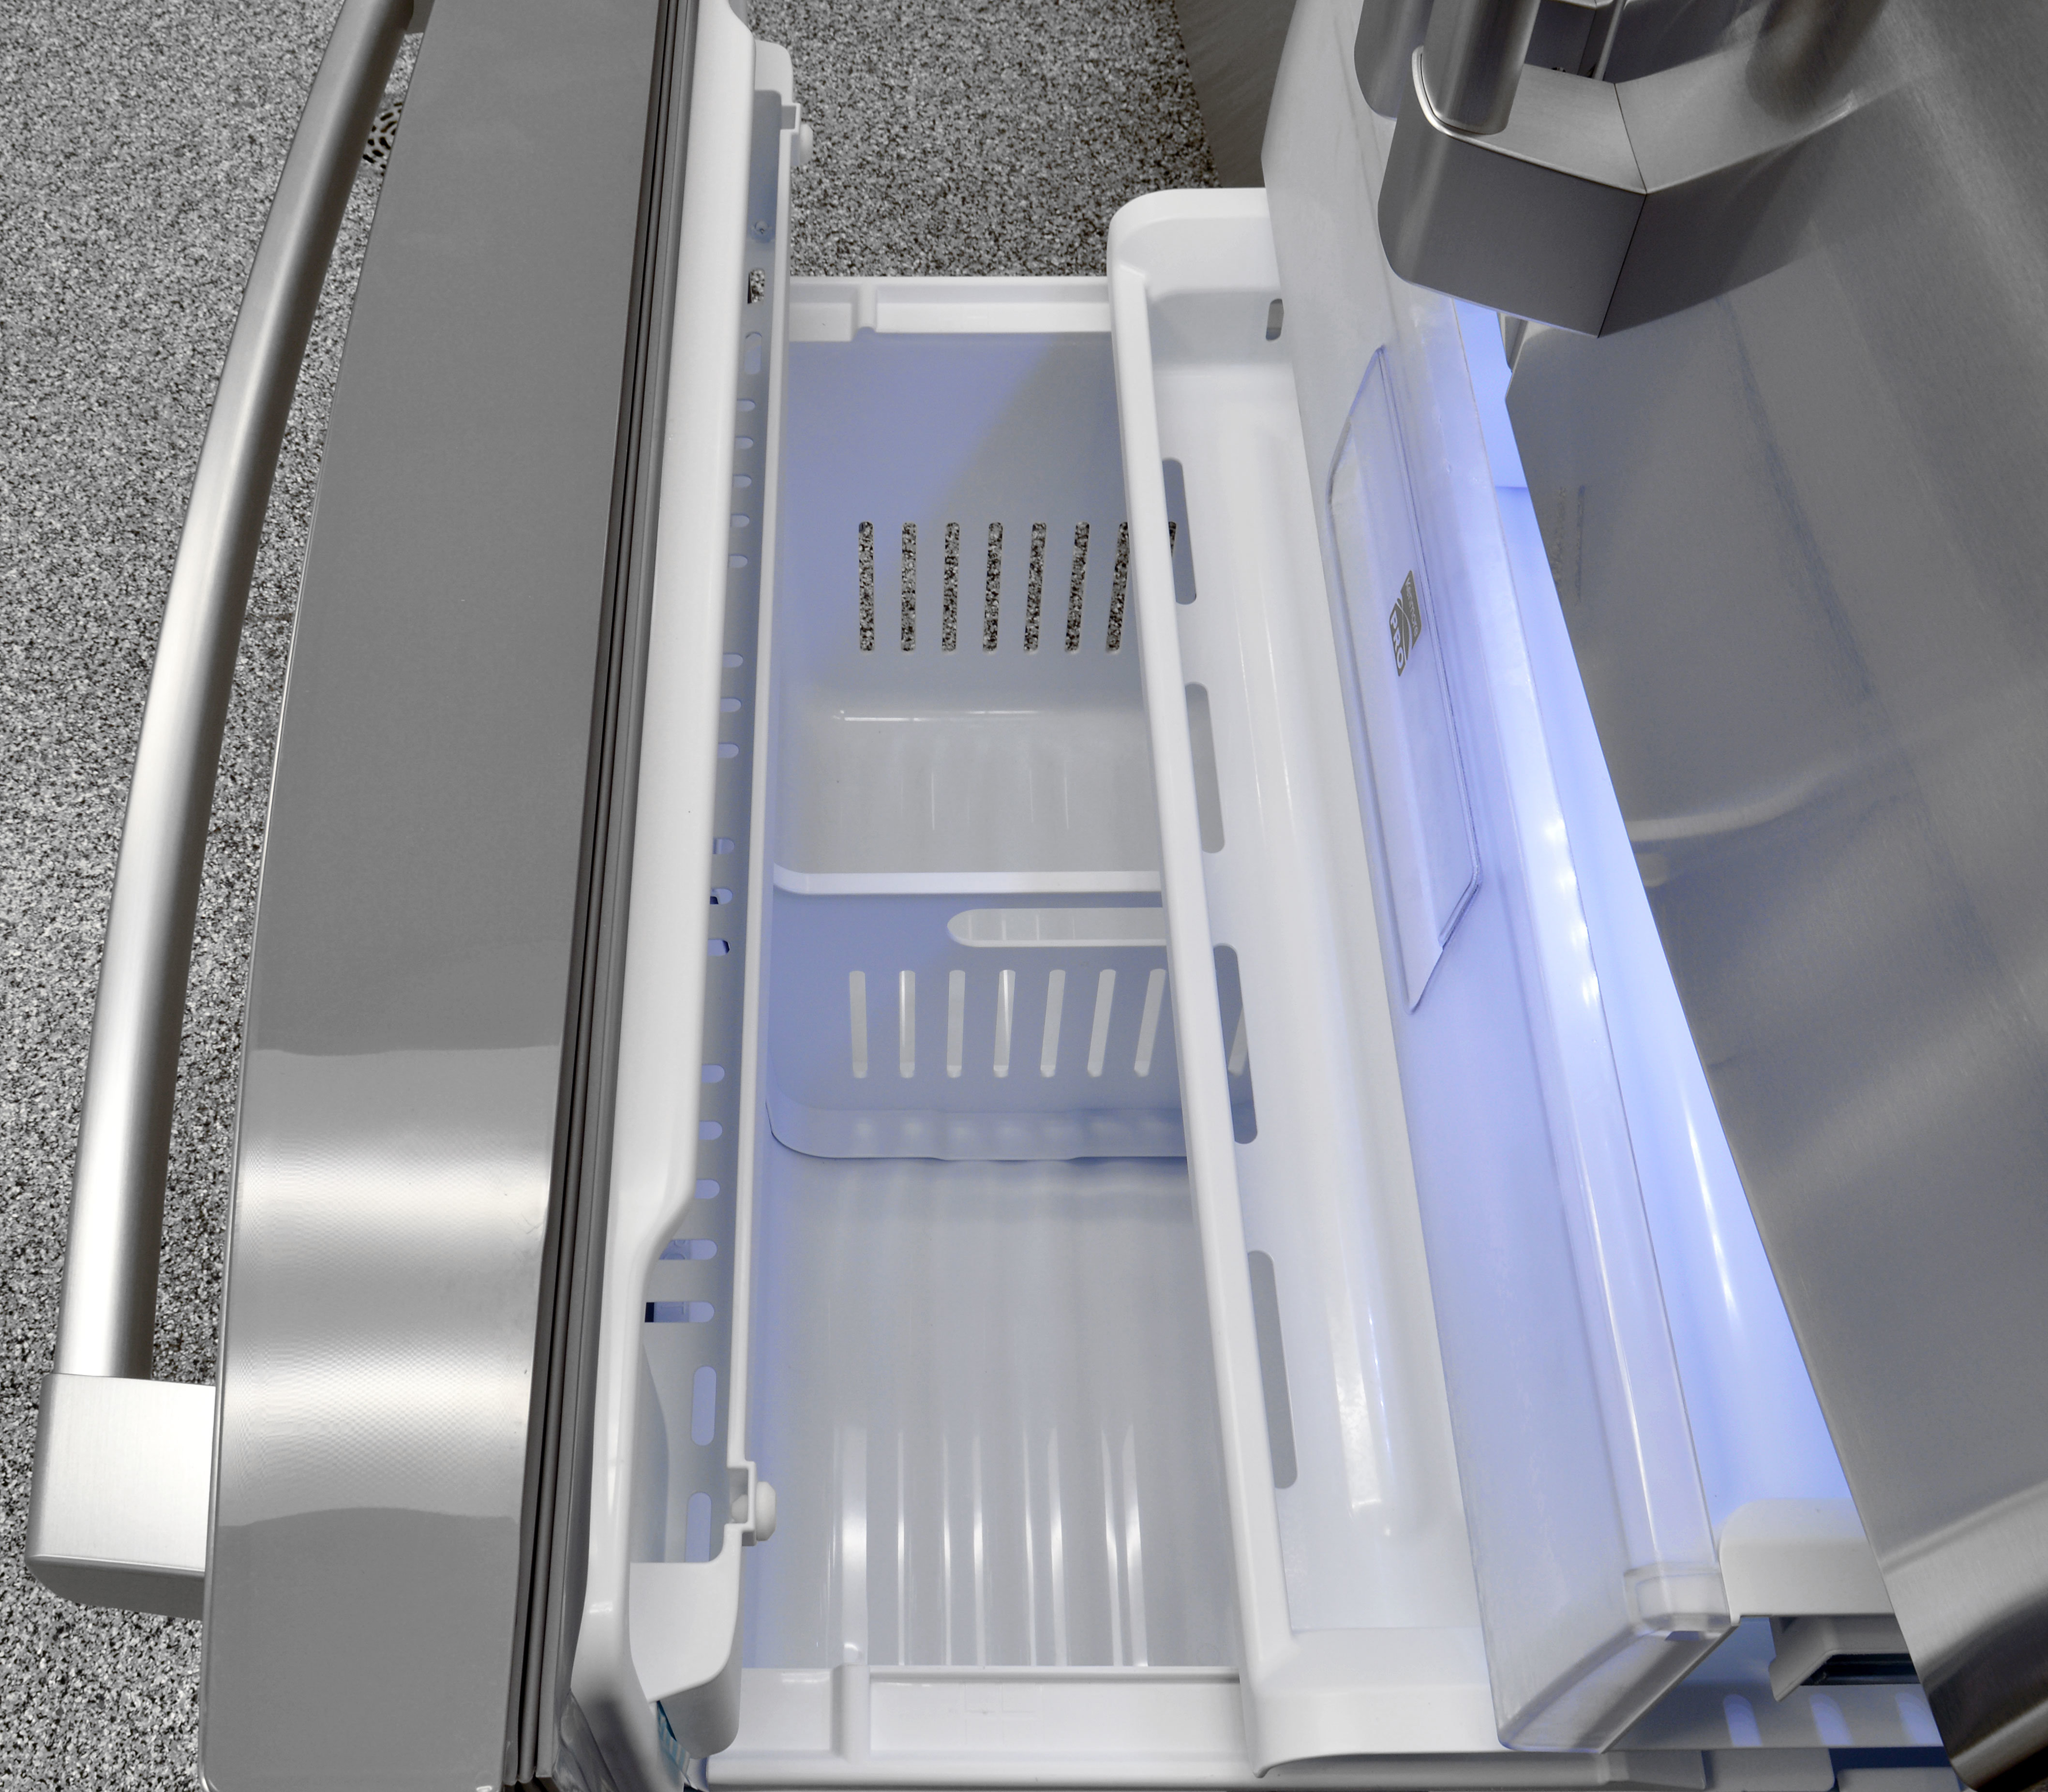 There's a short, shallow shelf just inside the Kenmore Pro 79993's freezer door, useful for keeping track of small or loose items like ice packs.